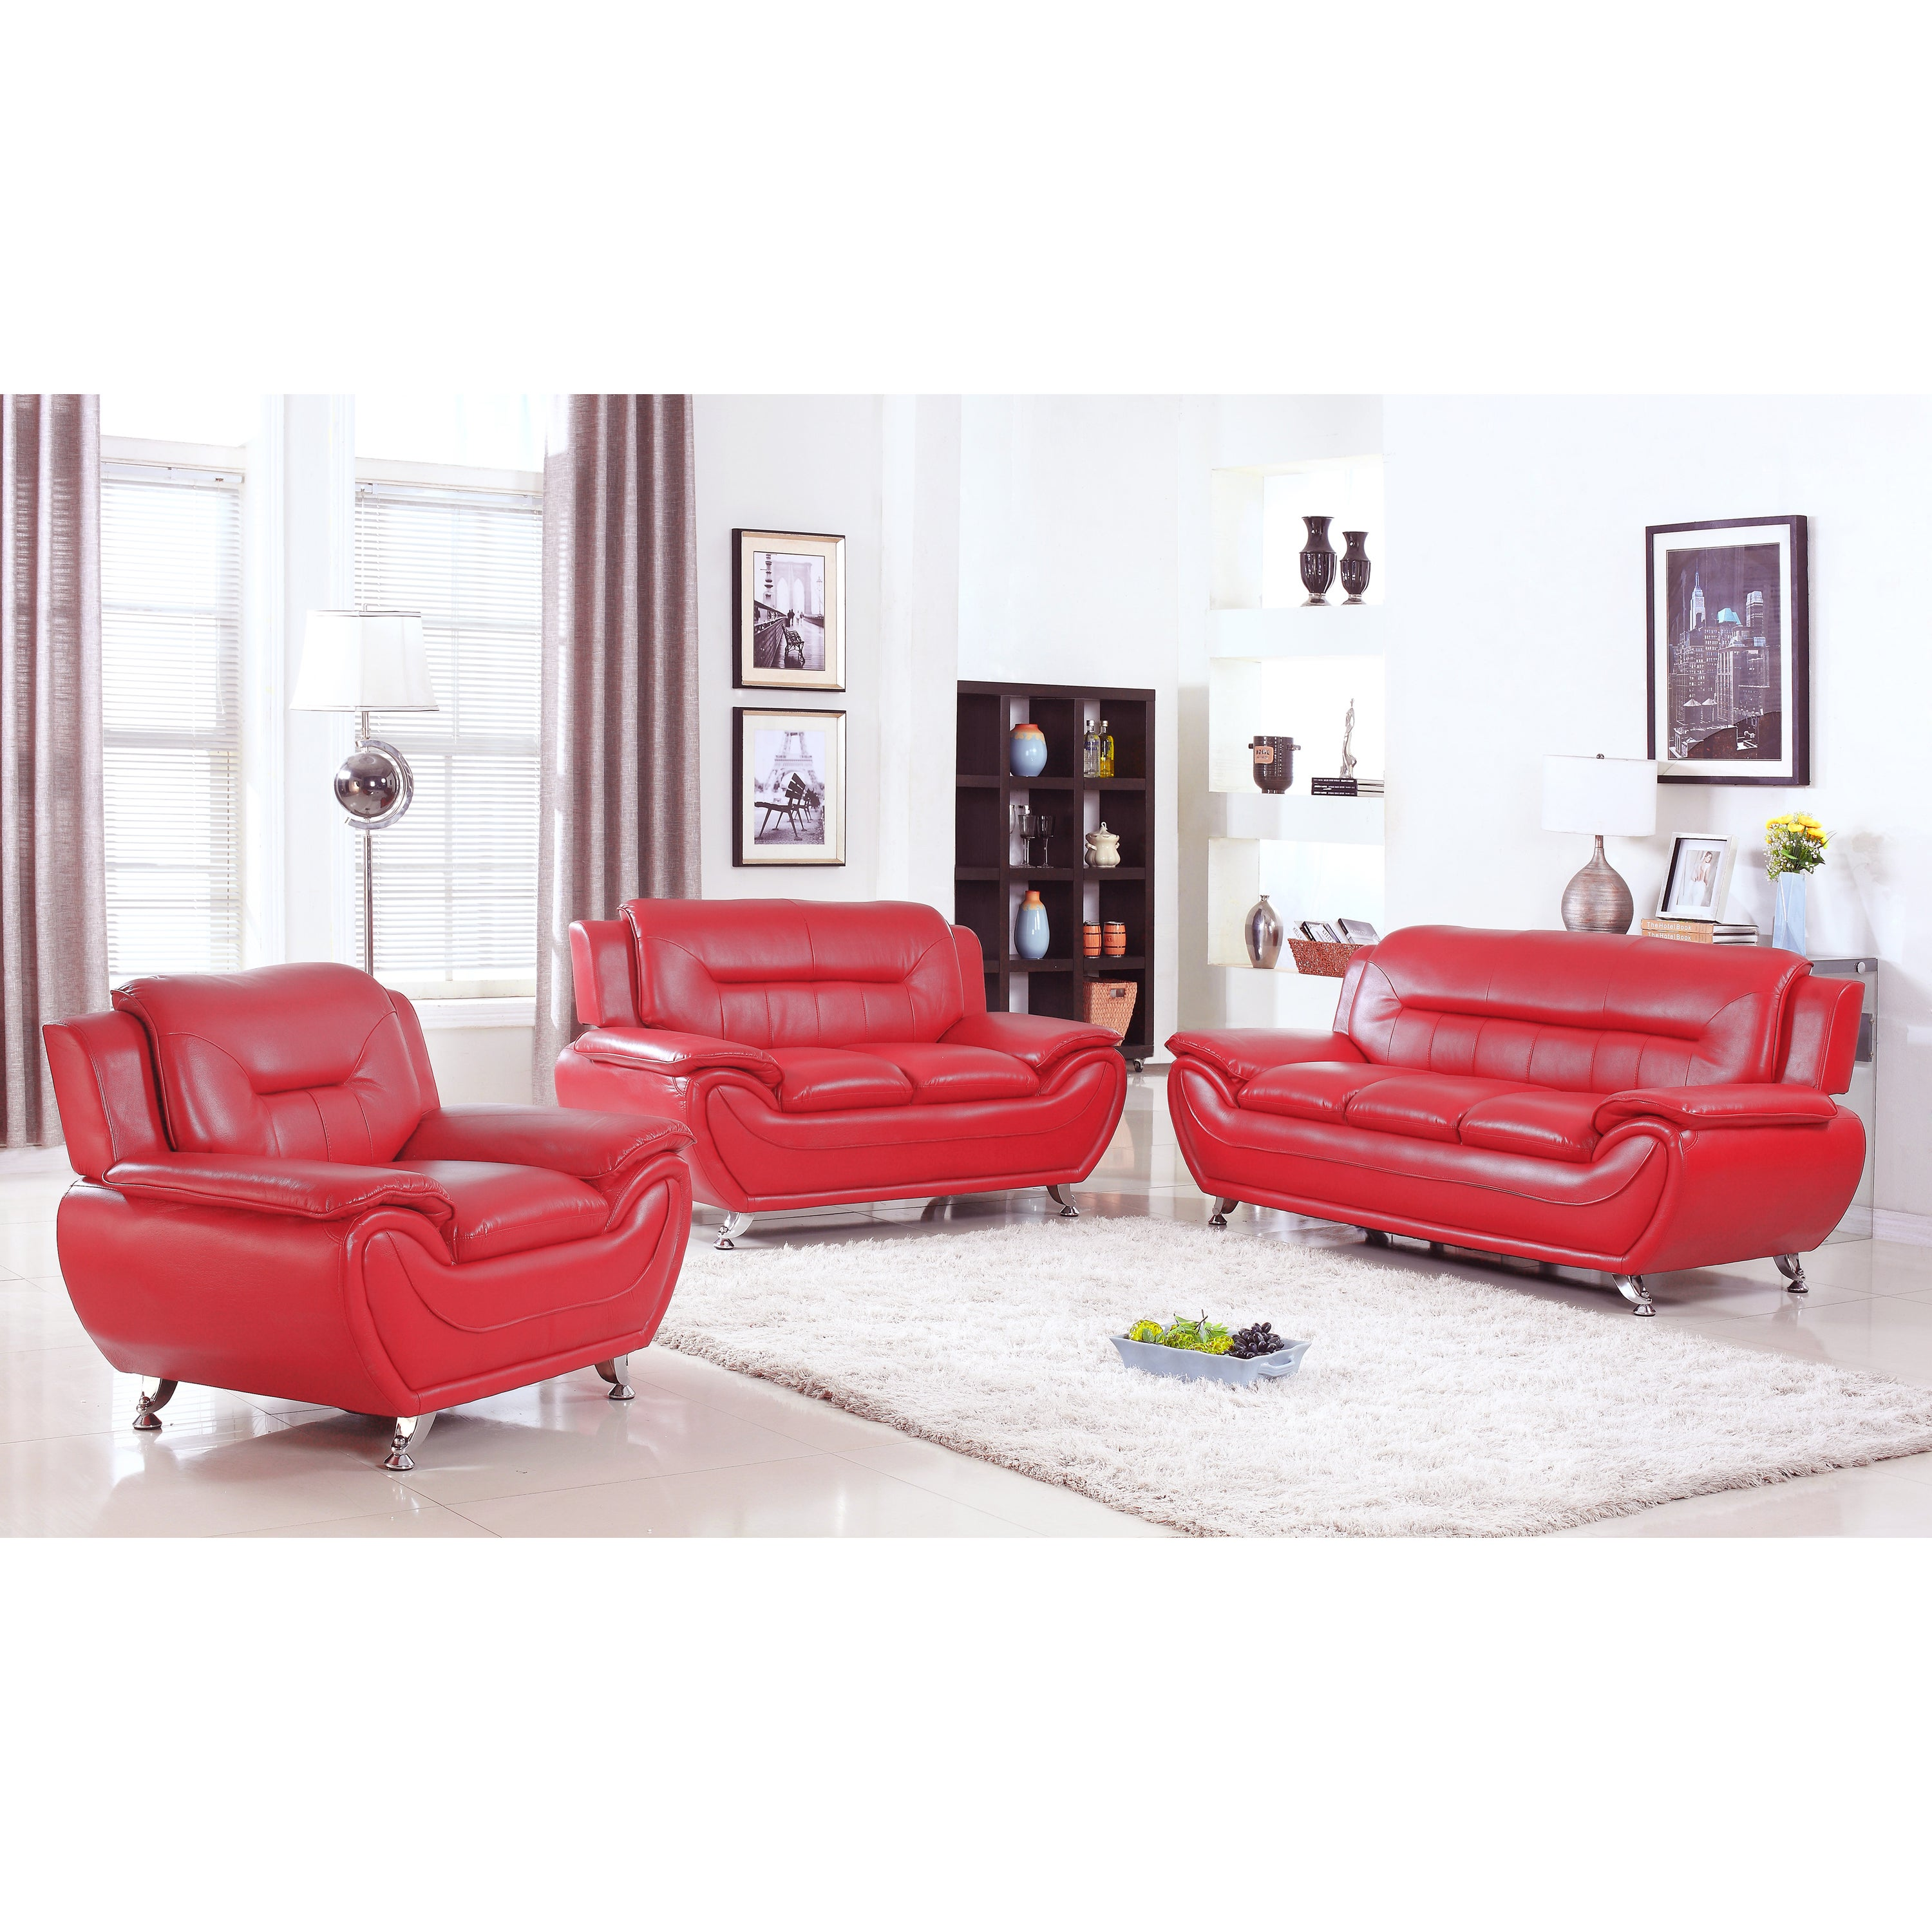 Shop alice red faux leather 3 piece modern living room set free shipping today overstock com 13181756